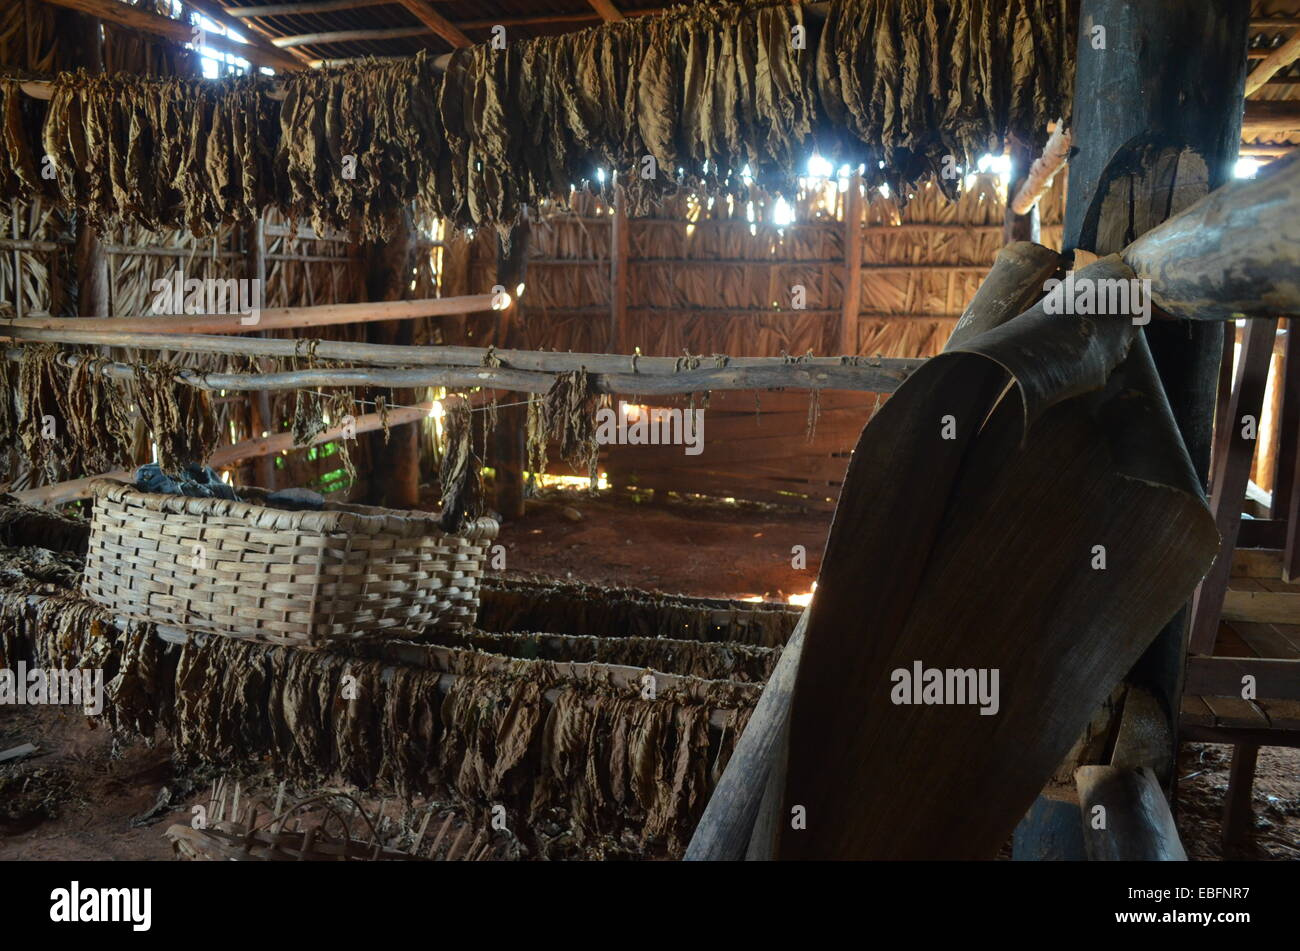 Tobacco leaves hang to dry inside a barn on a plantation in the Vinales region of Cuba - Stock Image